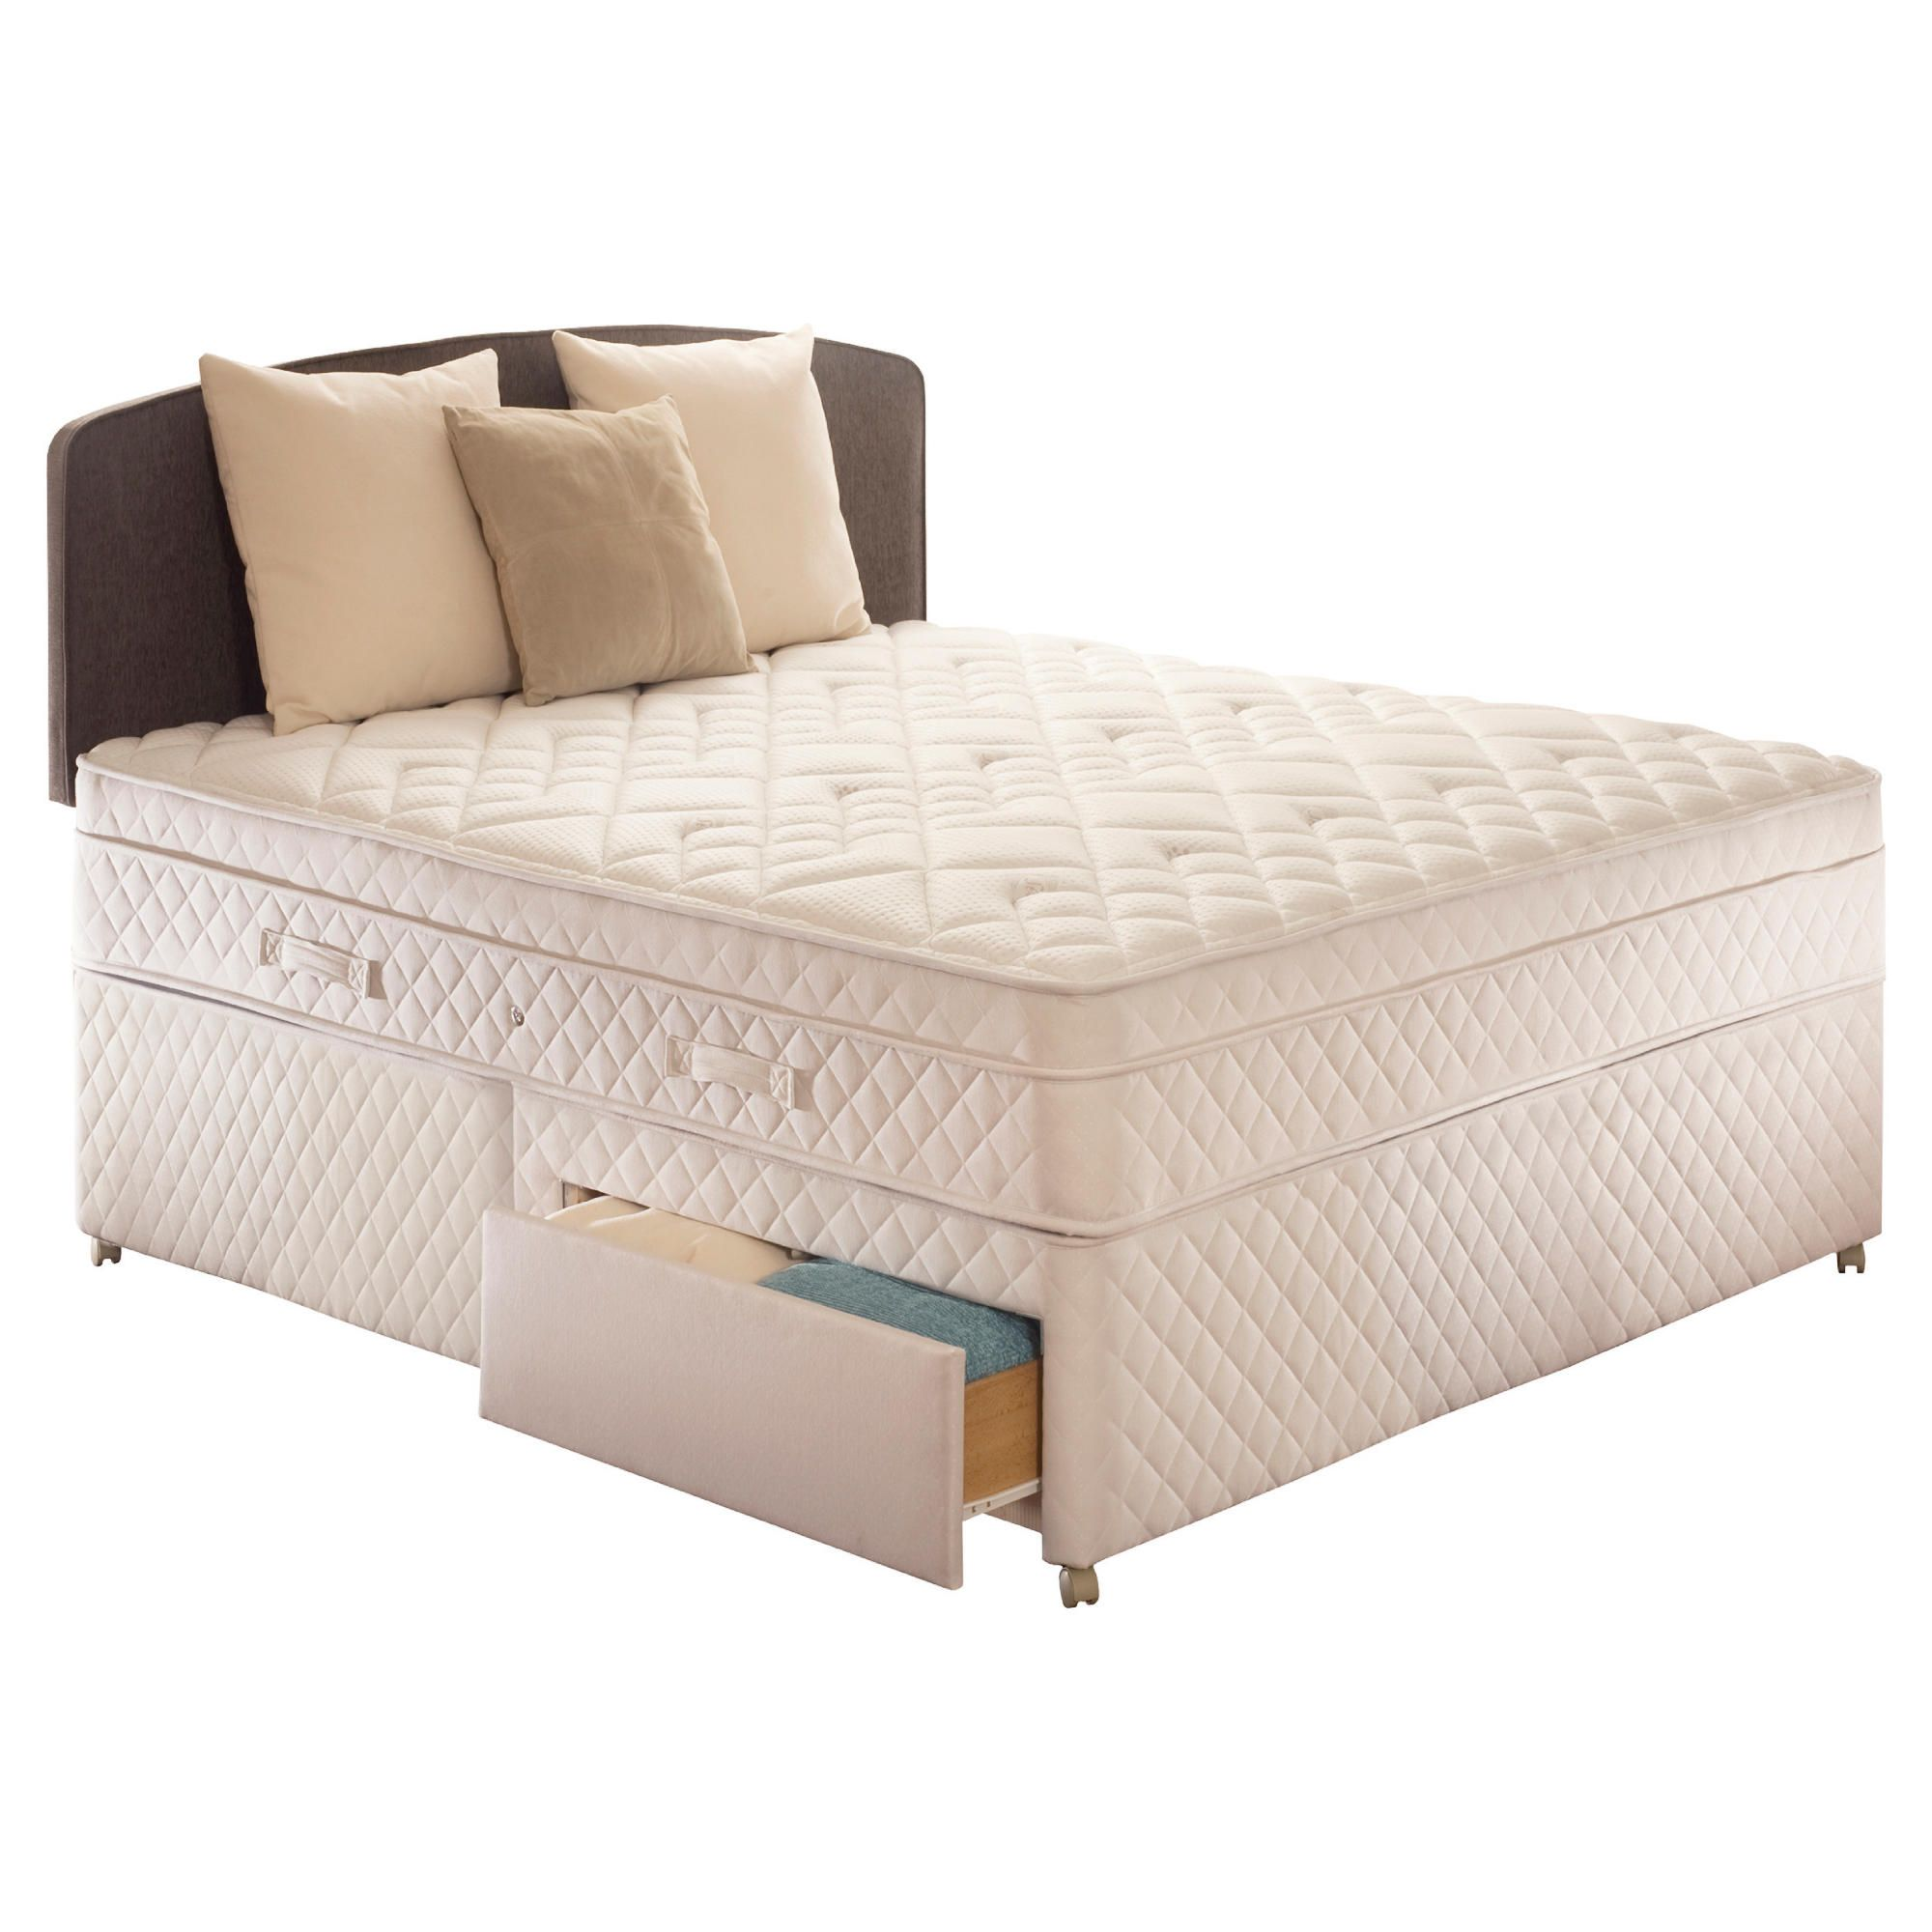 Sealy Diamond Excellence King 2 Drawer Divan Bed at Tesco Direct